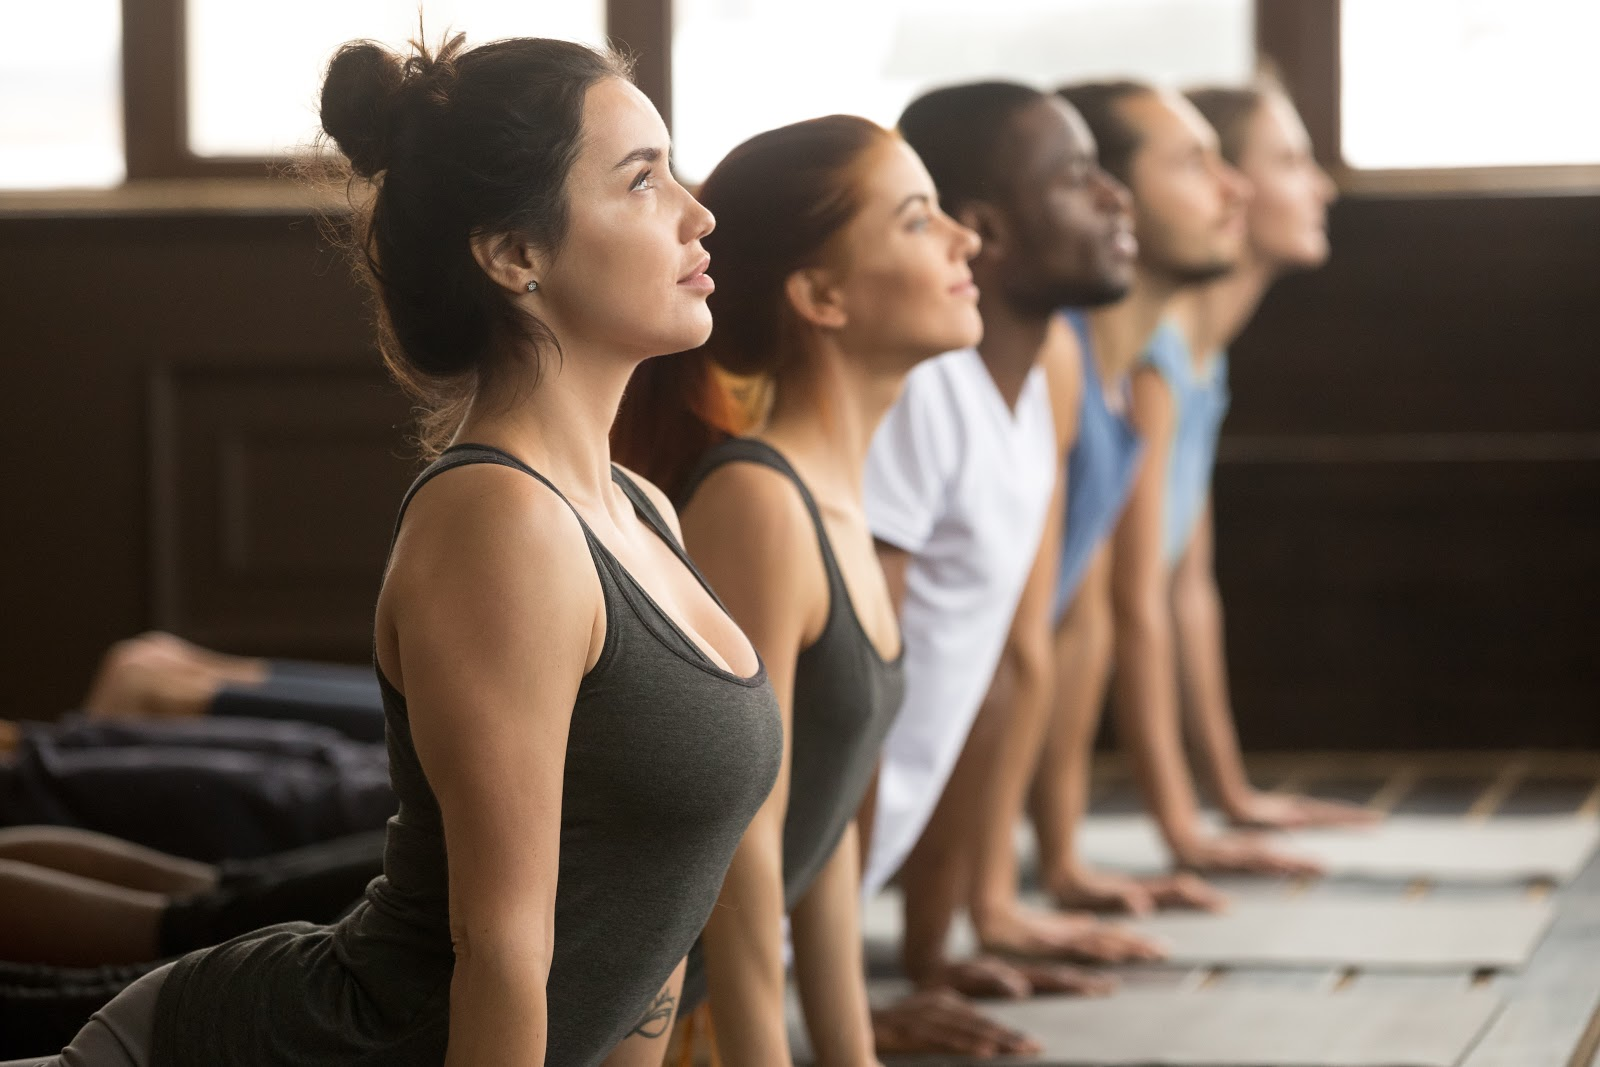 A group of people stretching yoga class